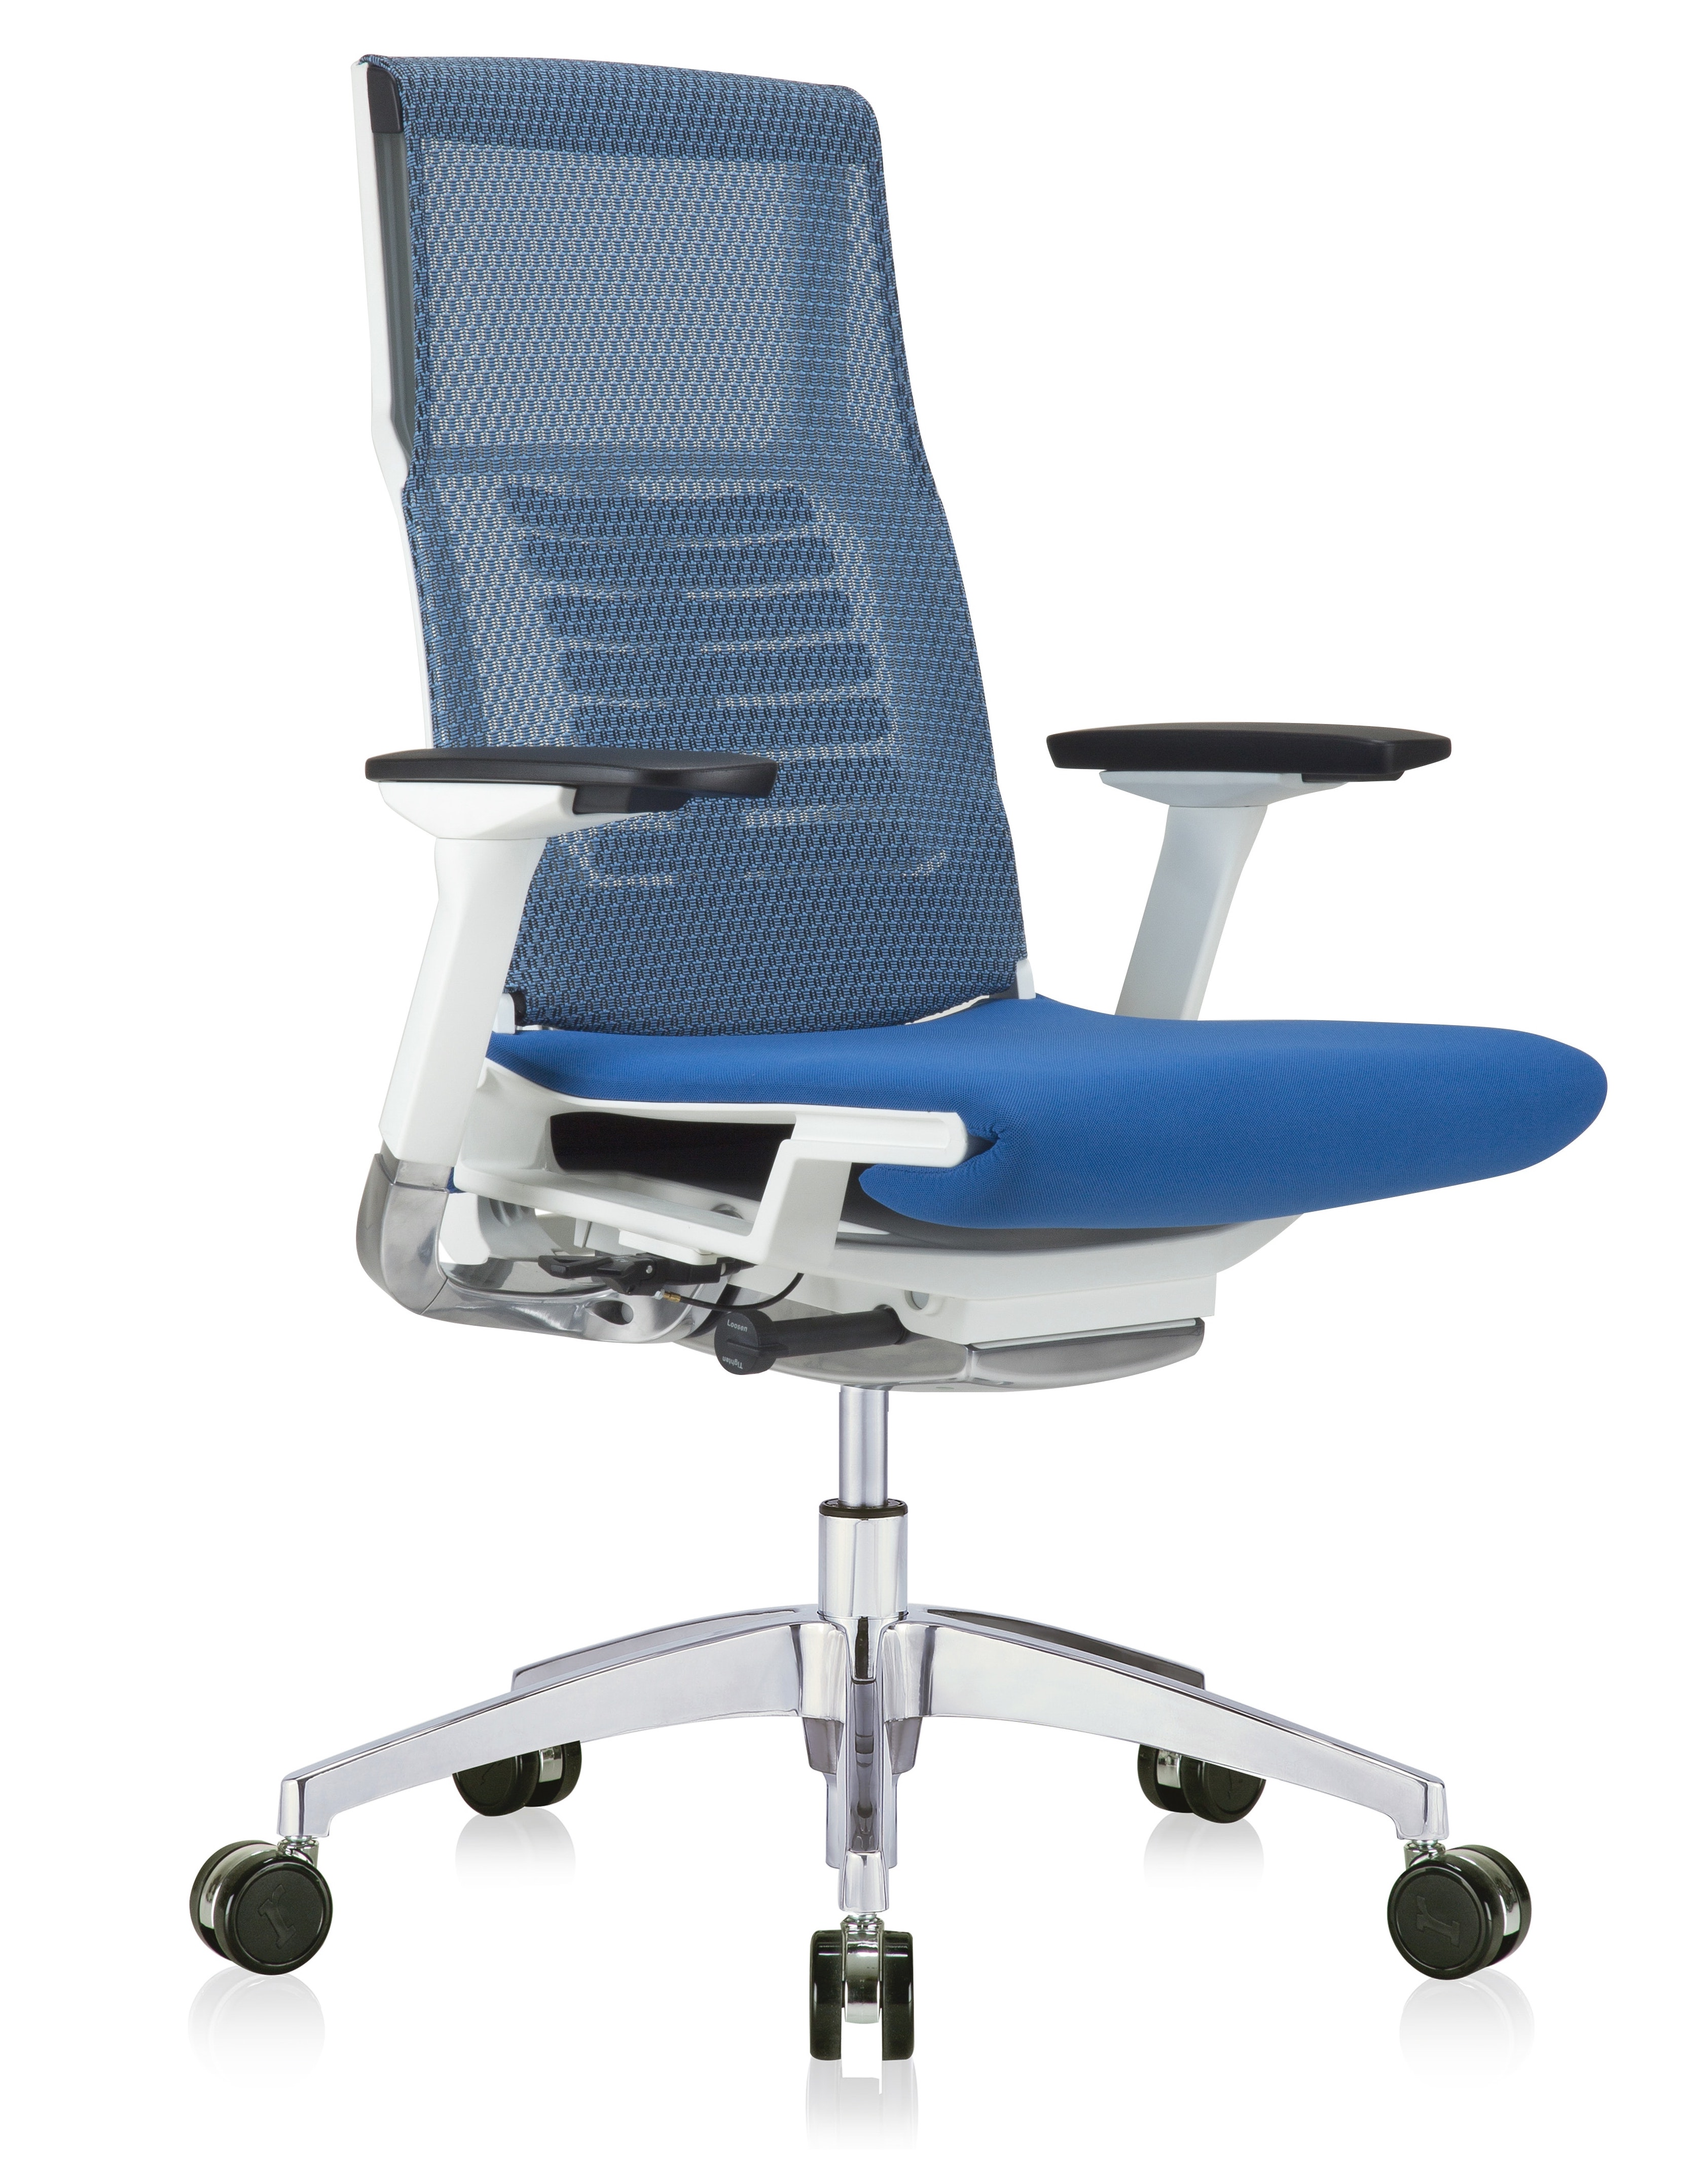 eurotech powerfit white frame office chair with blue mesh back and fabric seat